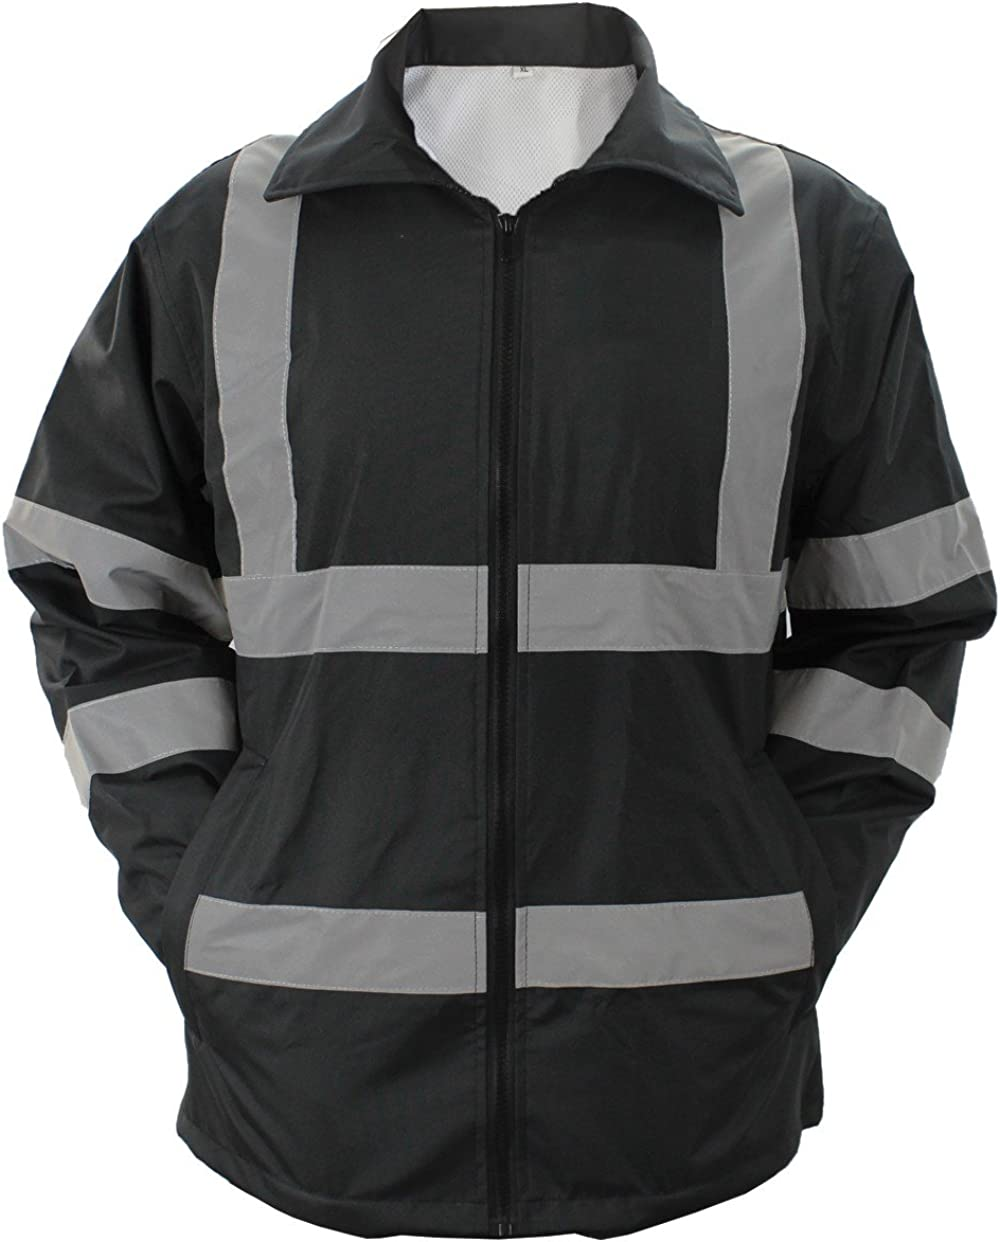 First Max 70% OFF Class HIGH Visibility Reflective Raincoat Stripes Special price with